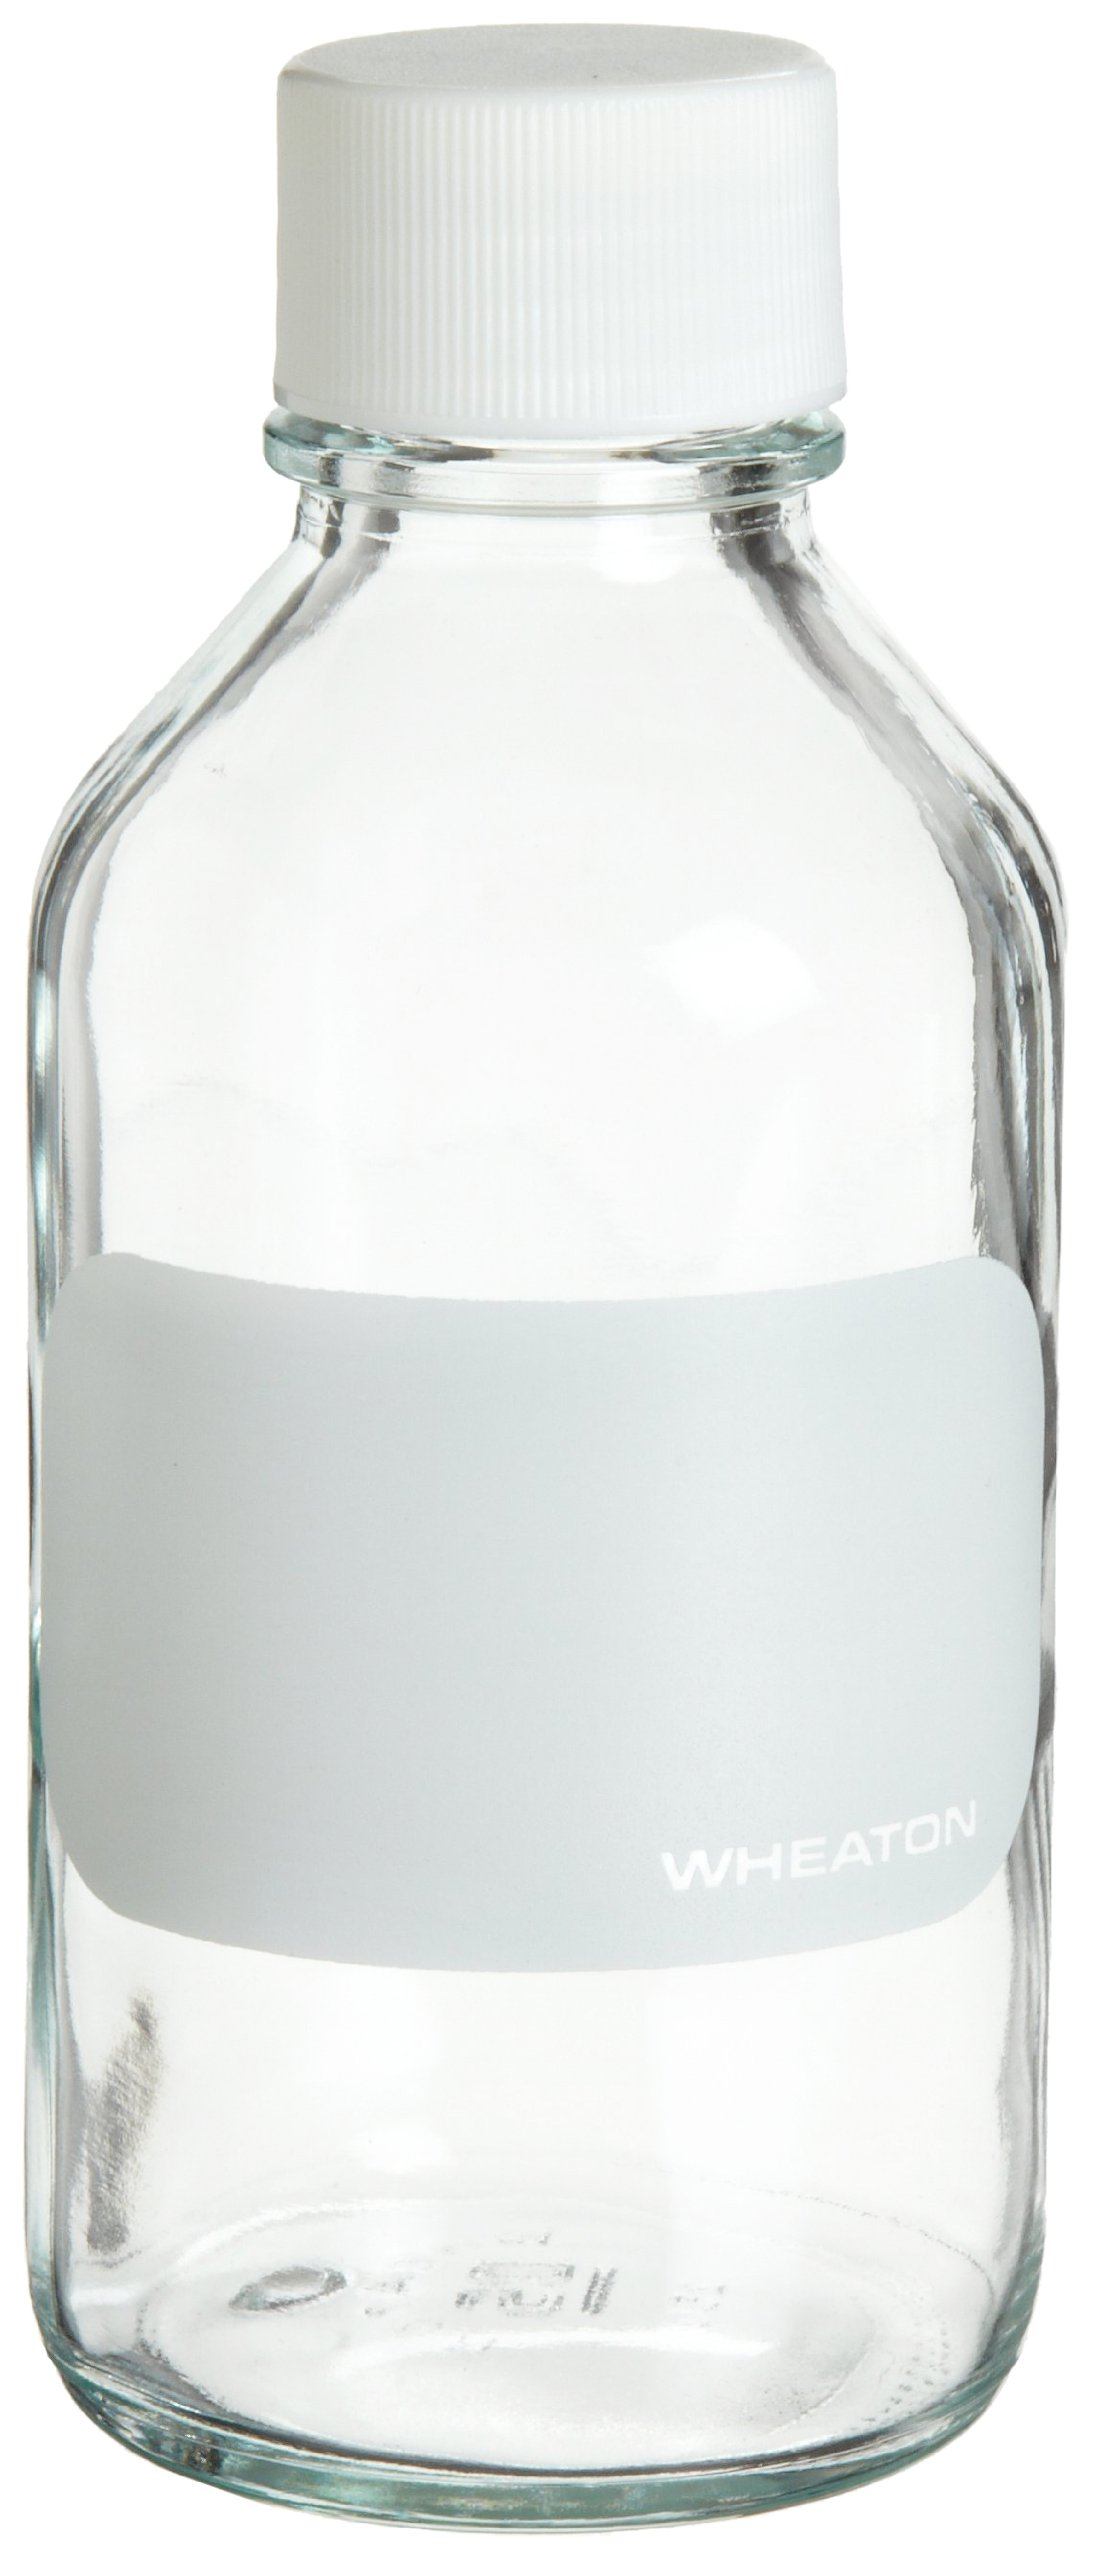 Wheaton 220223 Reagent Bottle, 250mL With 33-430 Solid Polypropylene PTFE Lined Screw Cap, 67mm x 150mm (Case of 6)